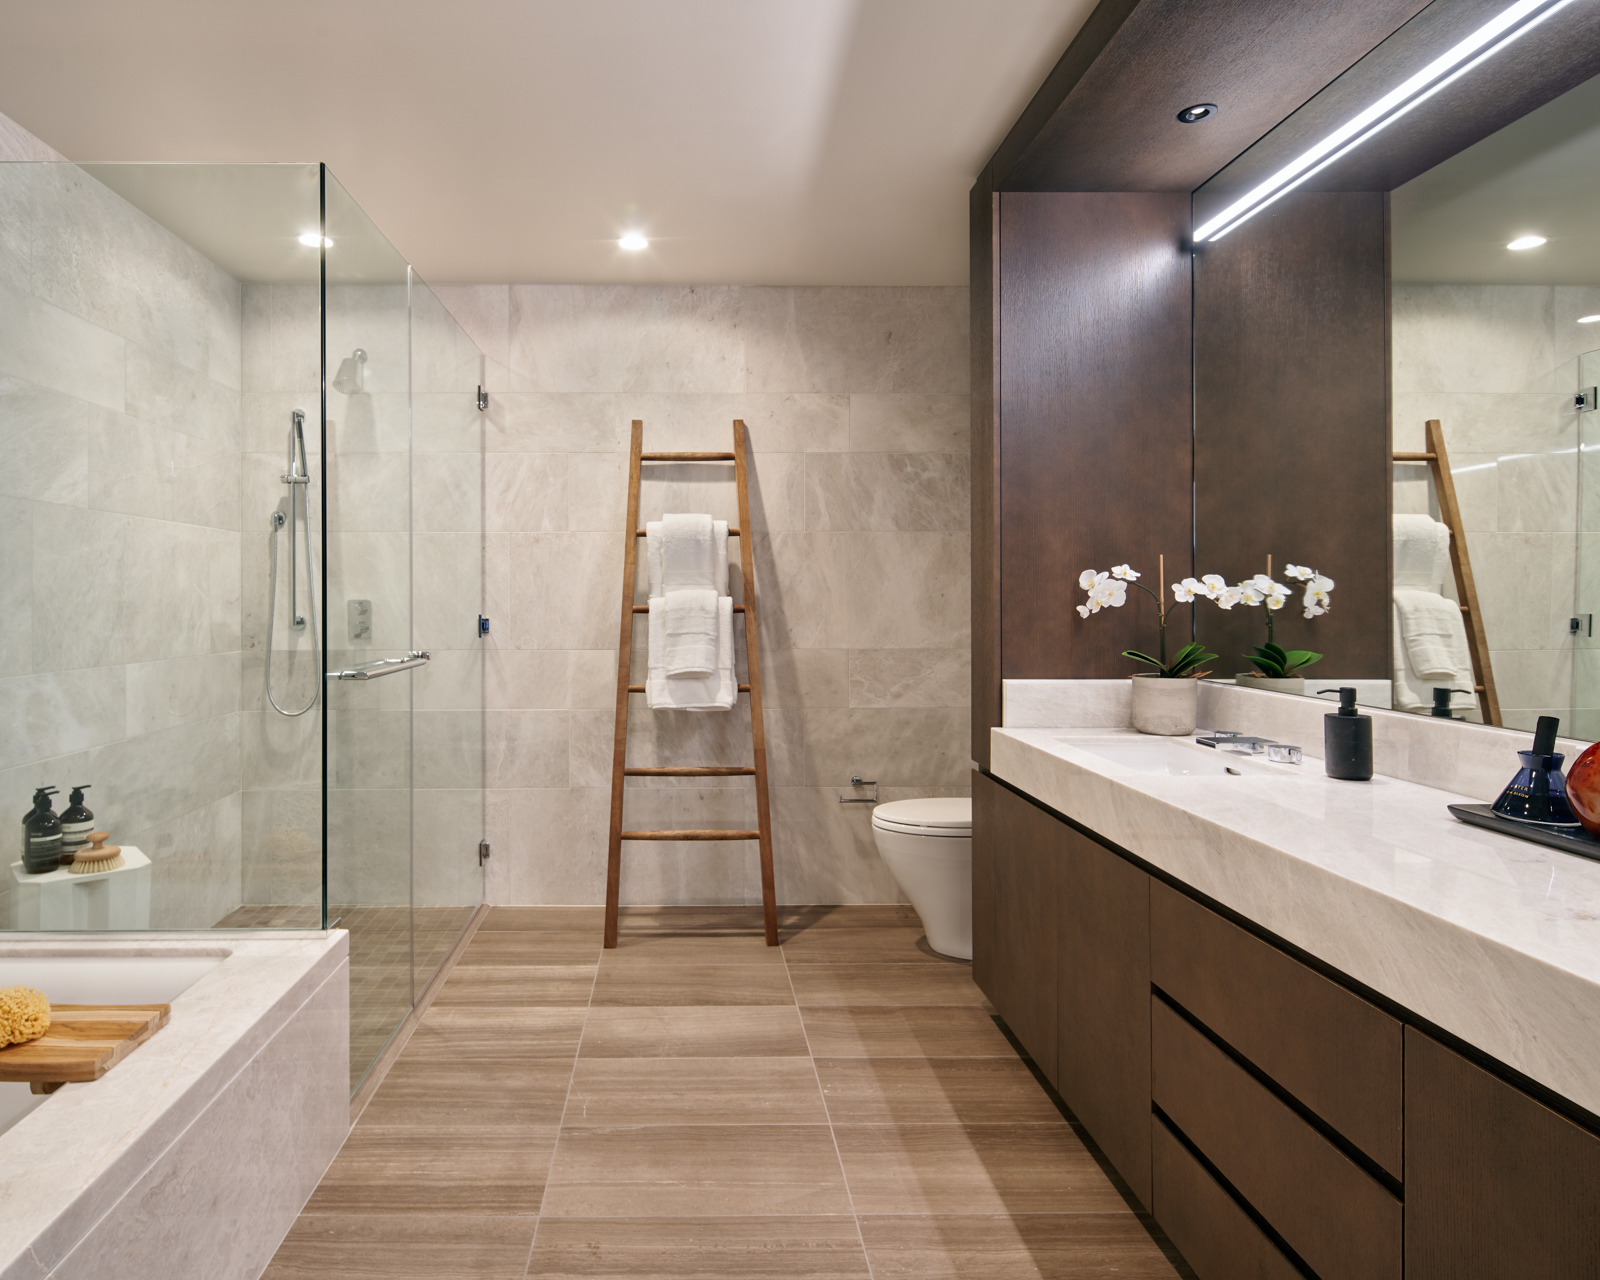 Sumptuous master baths appointed with elegant stone and warm wood tones